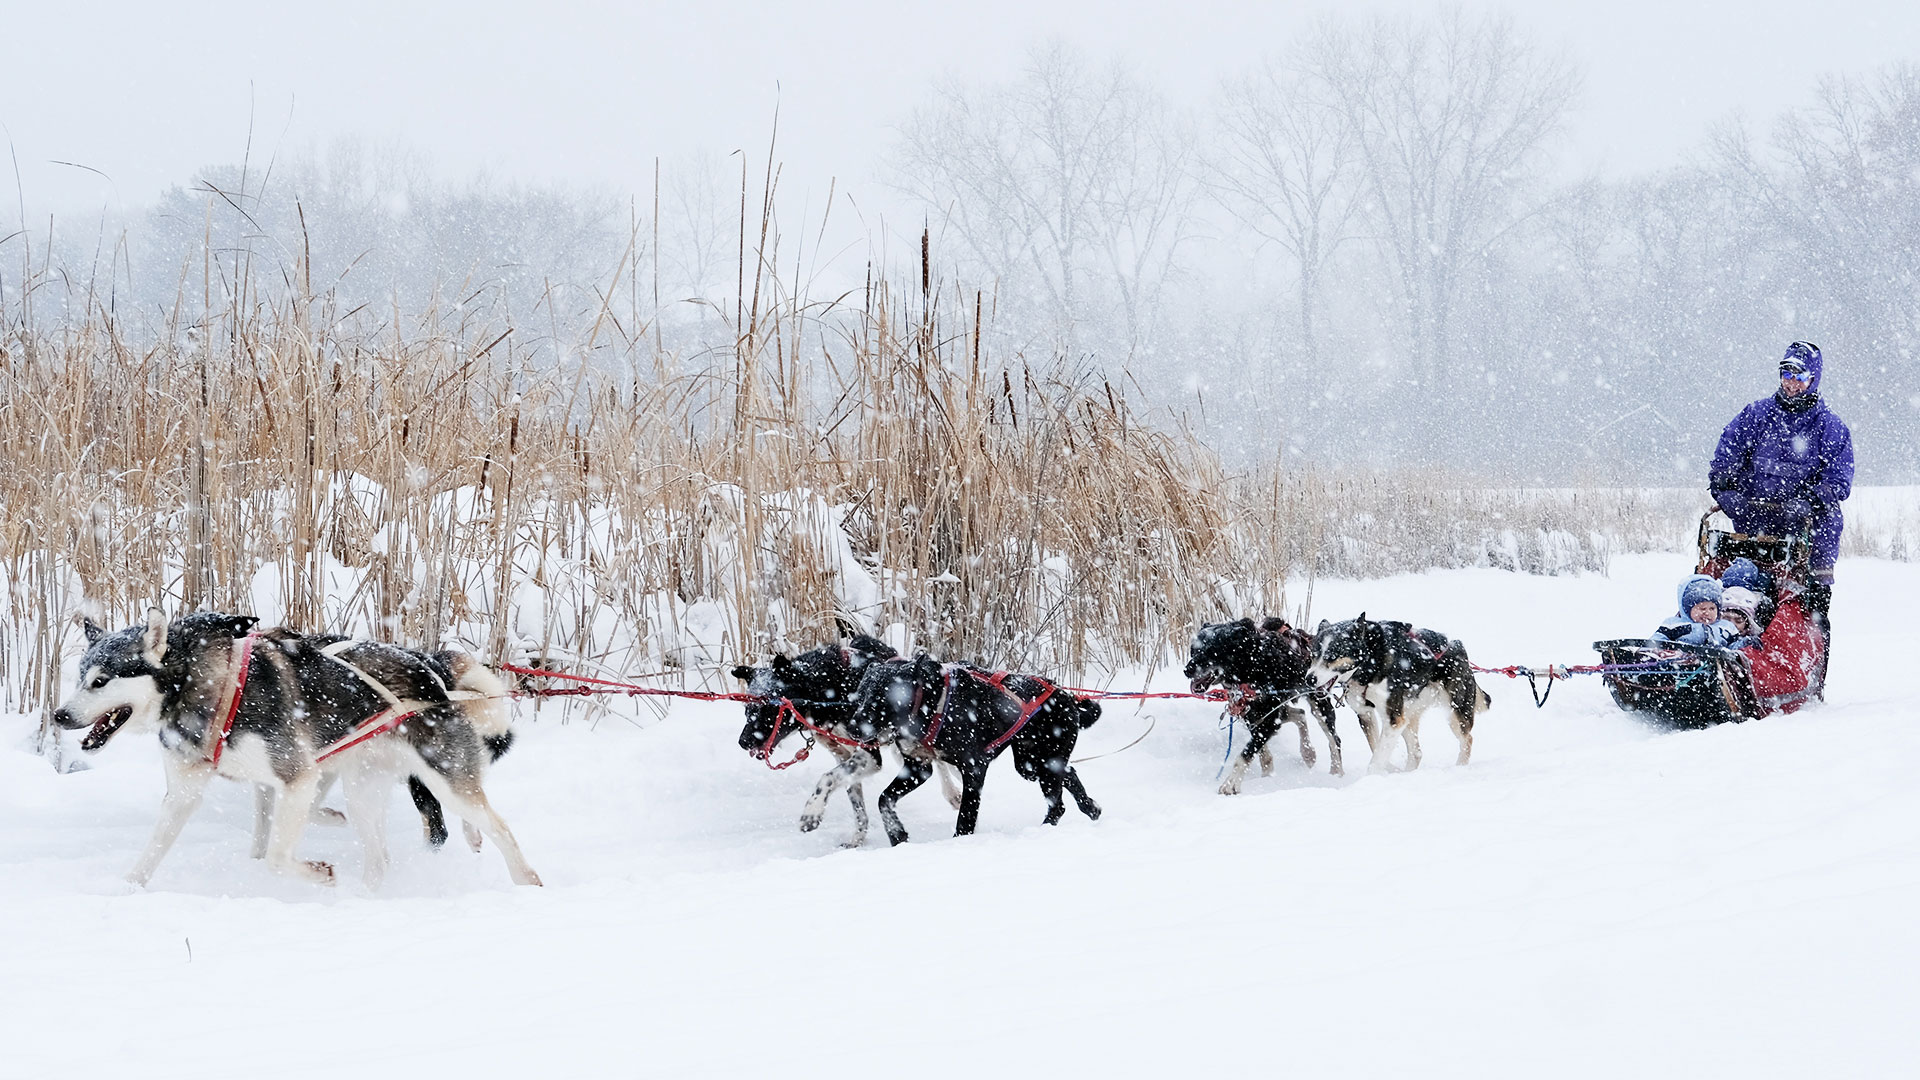 People riding in dog sled in winter